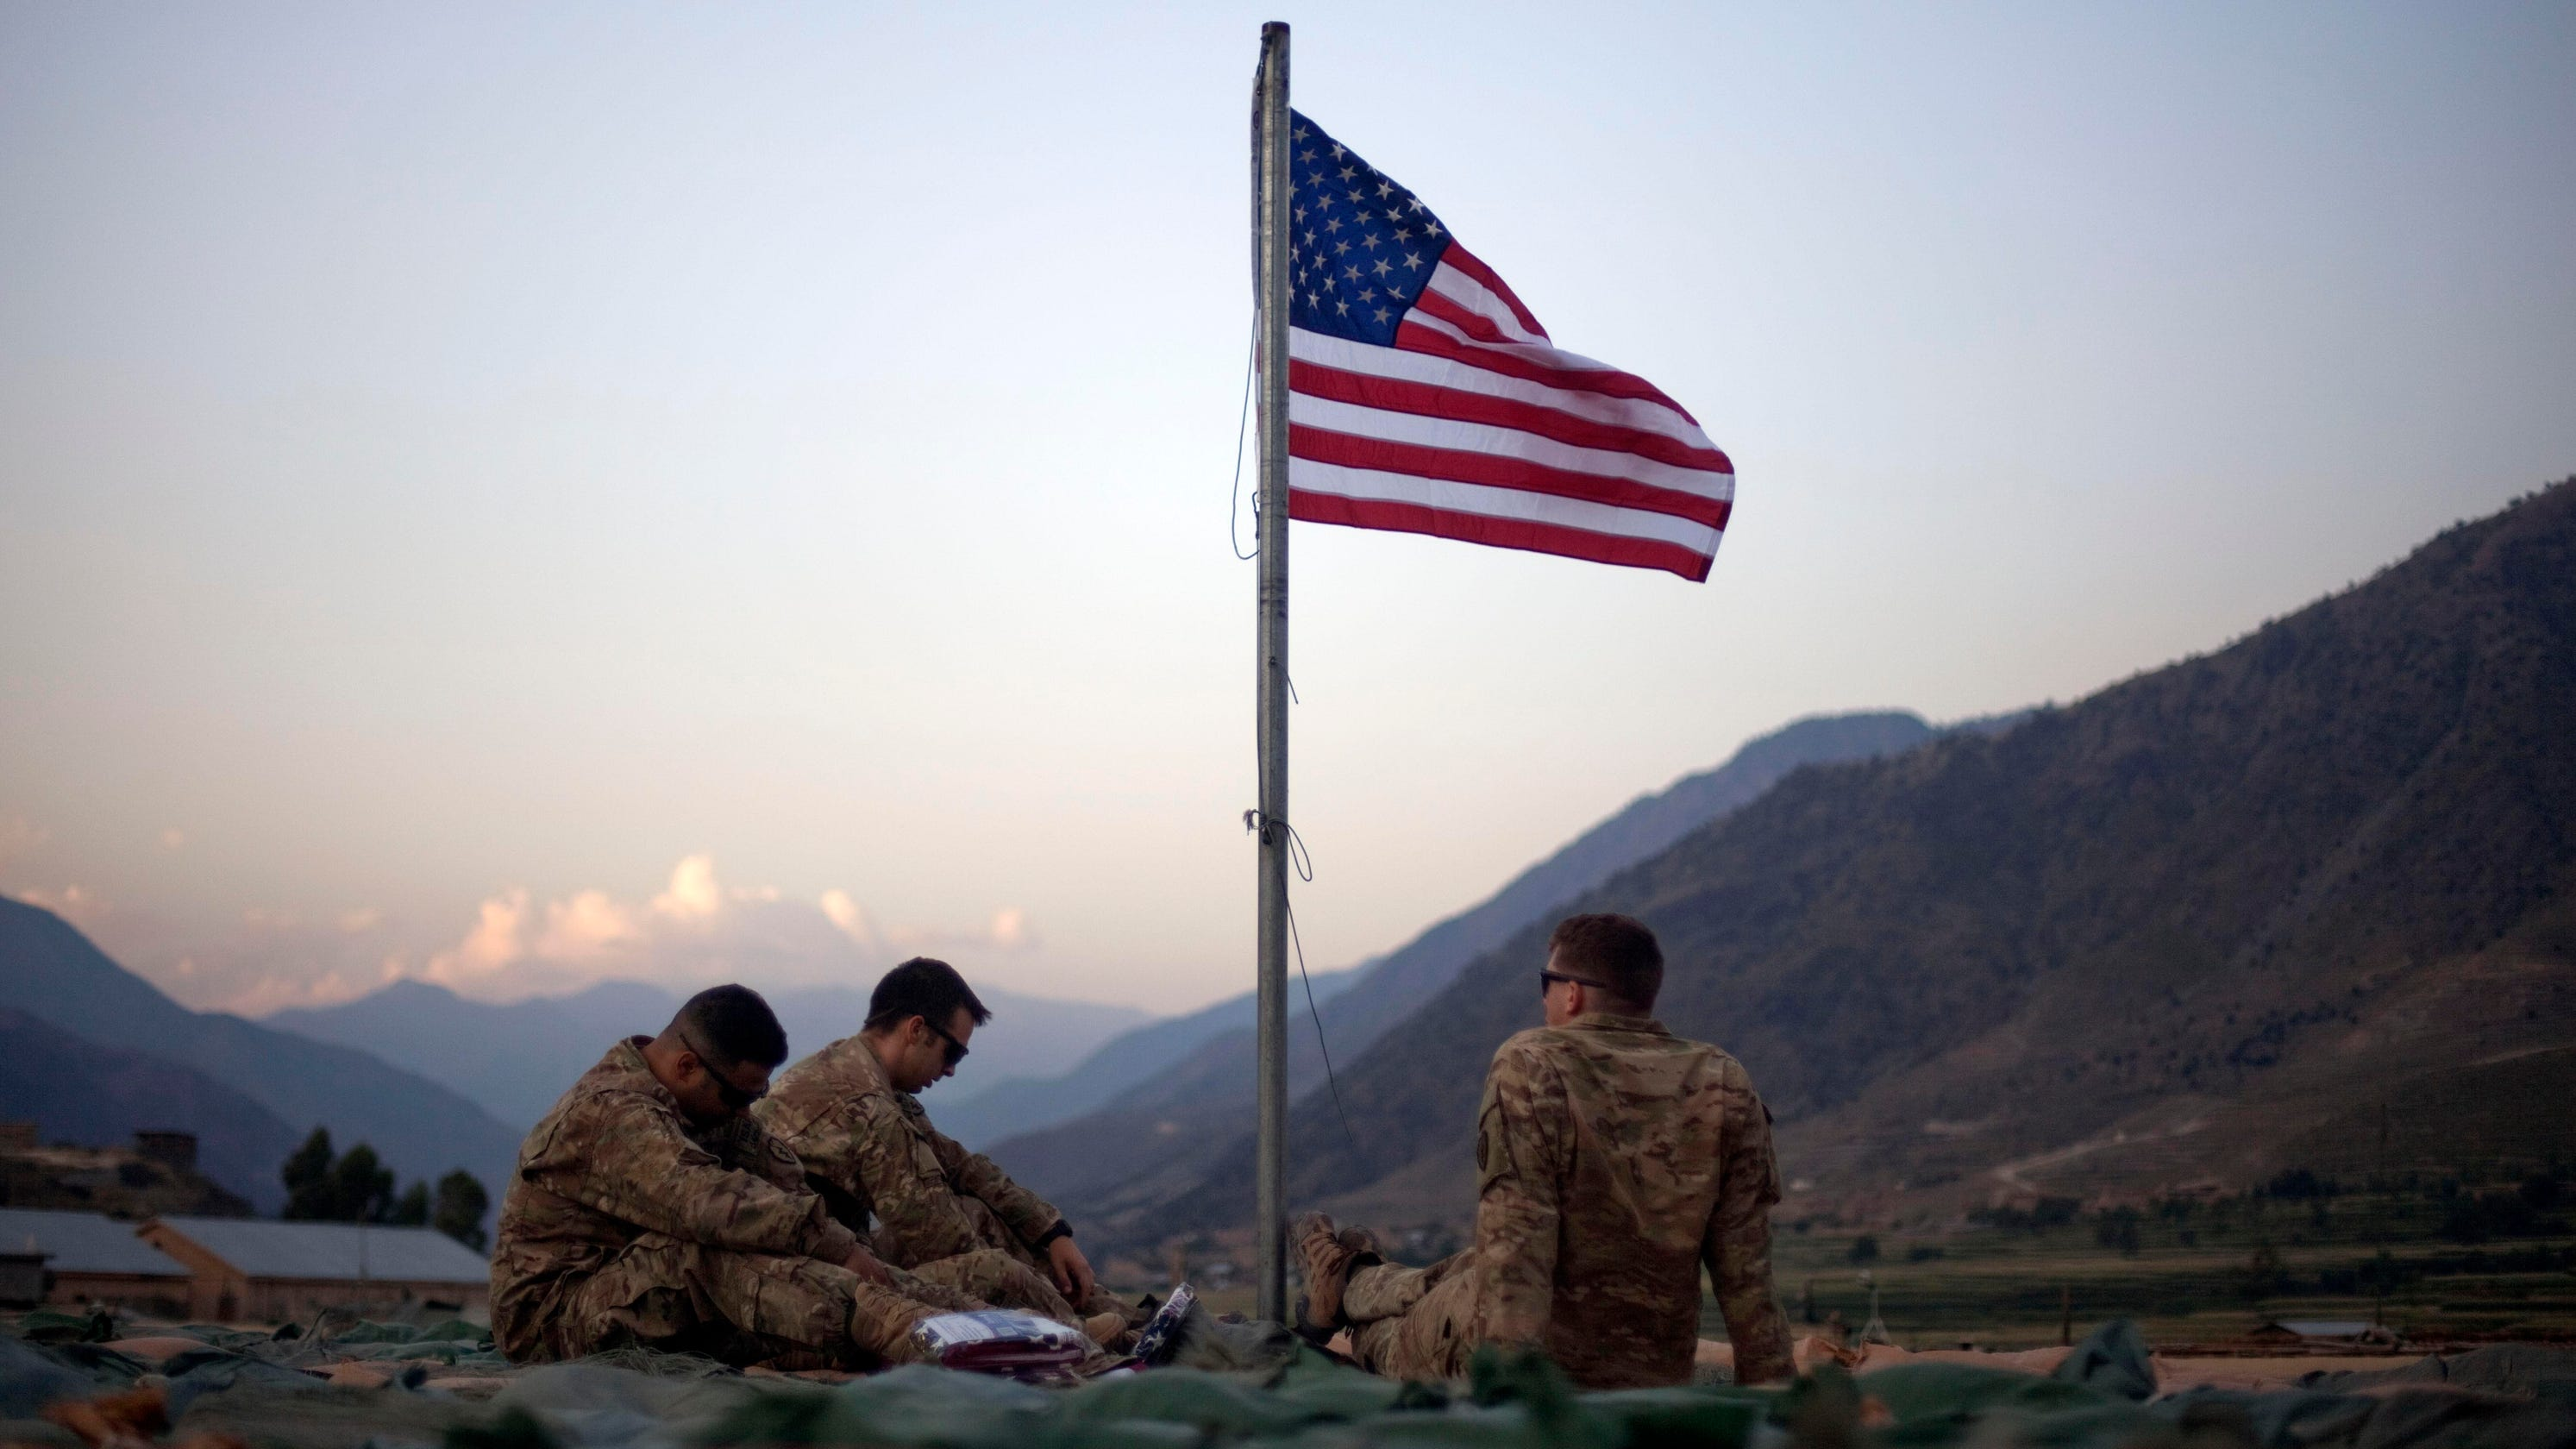 OnPolitics: The war in Afghanistan will come to an end